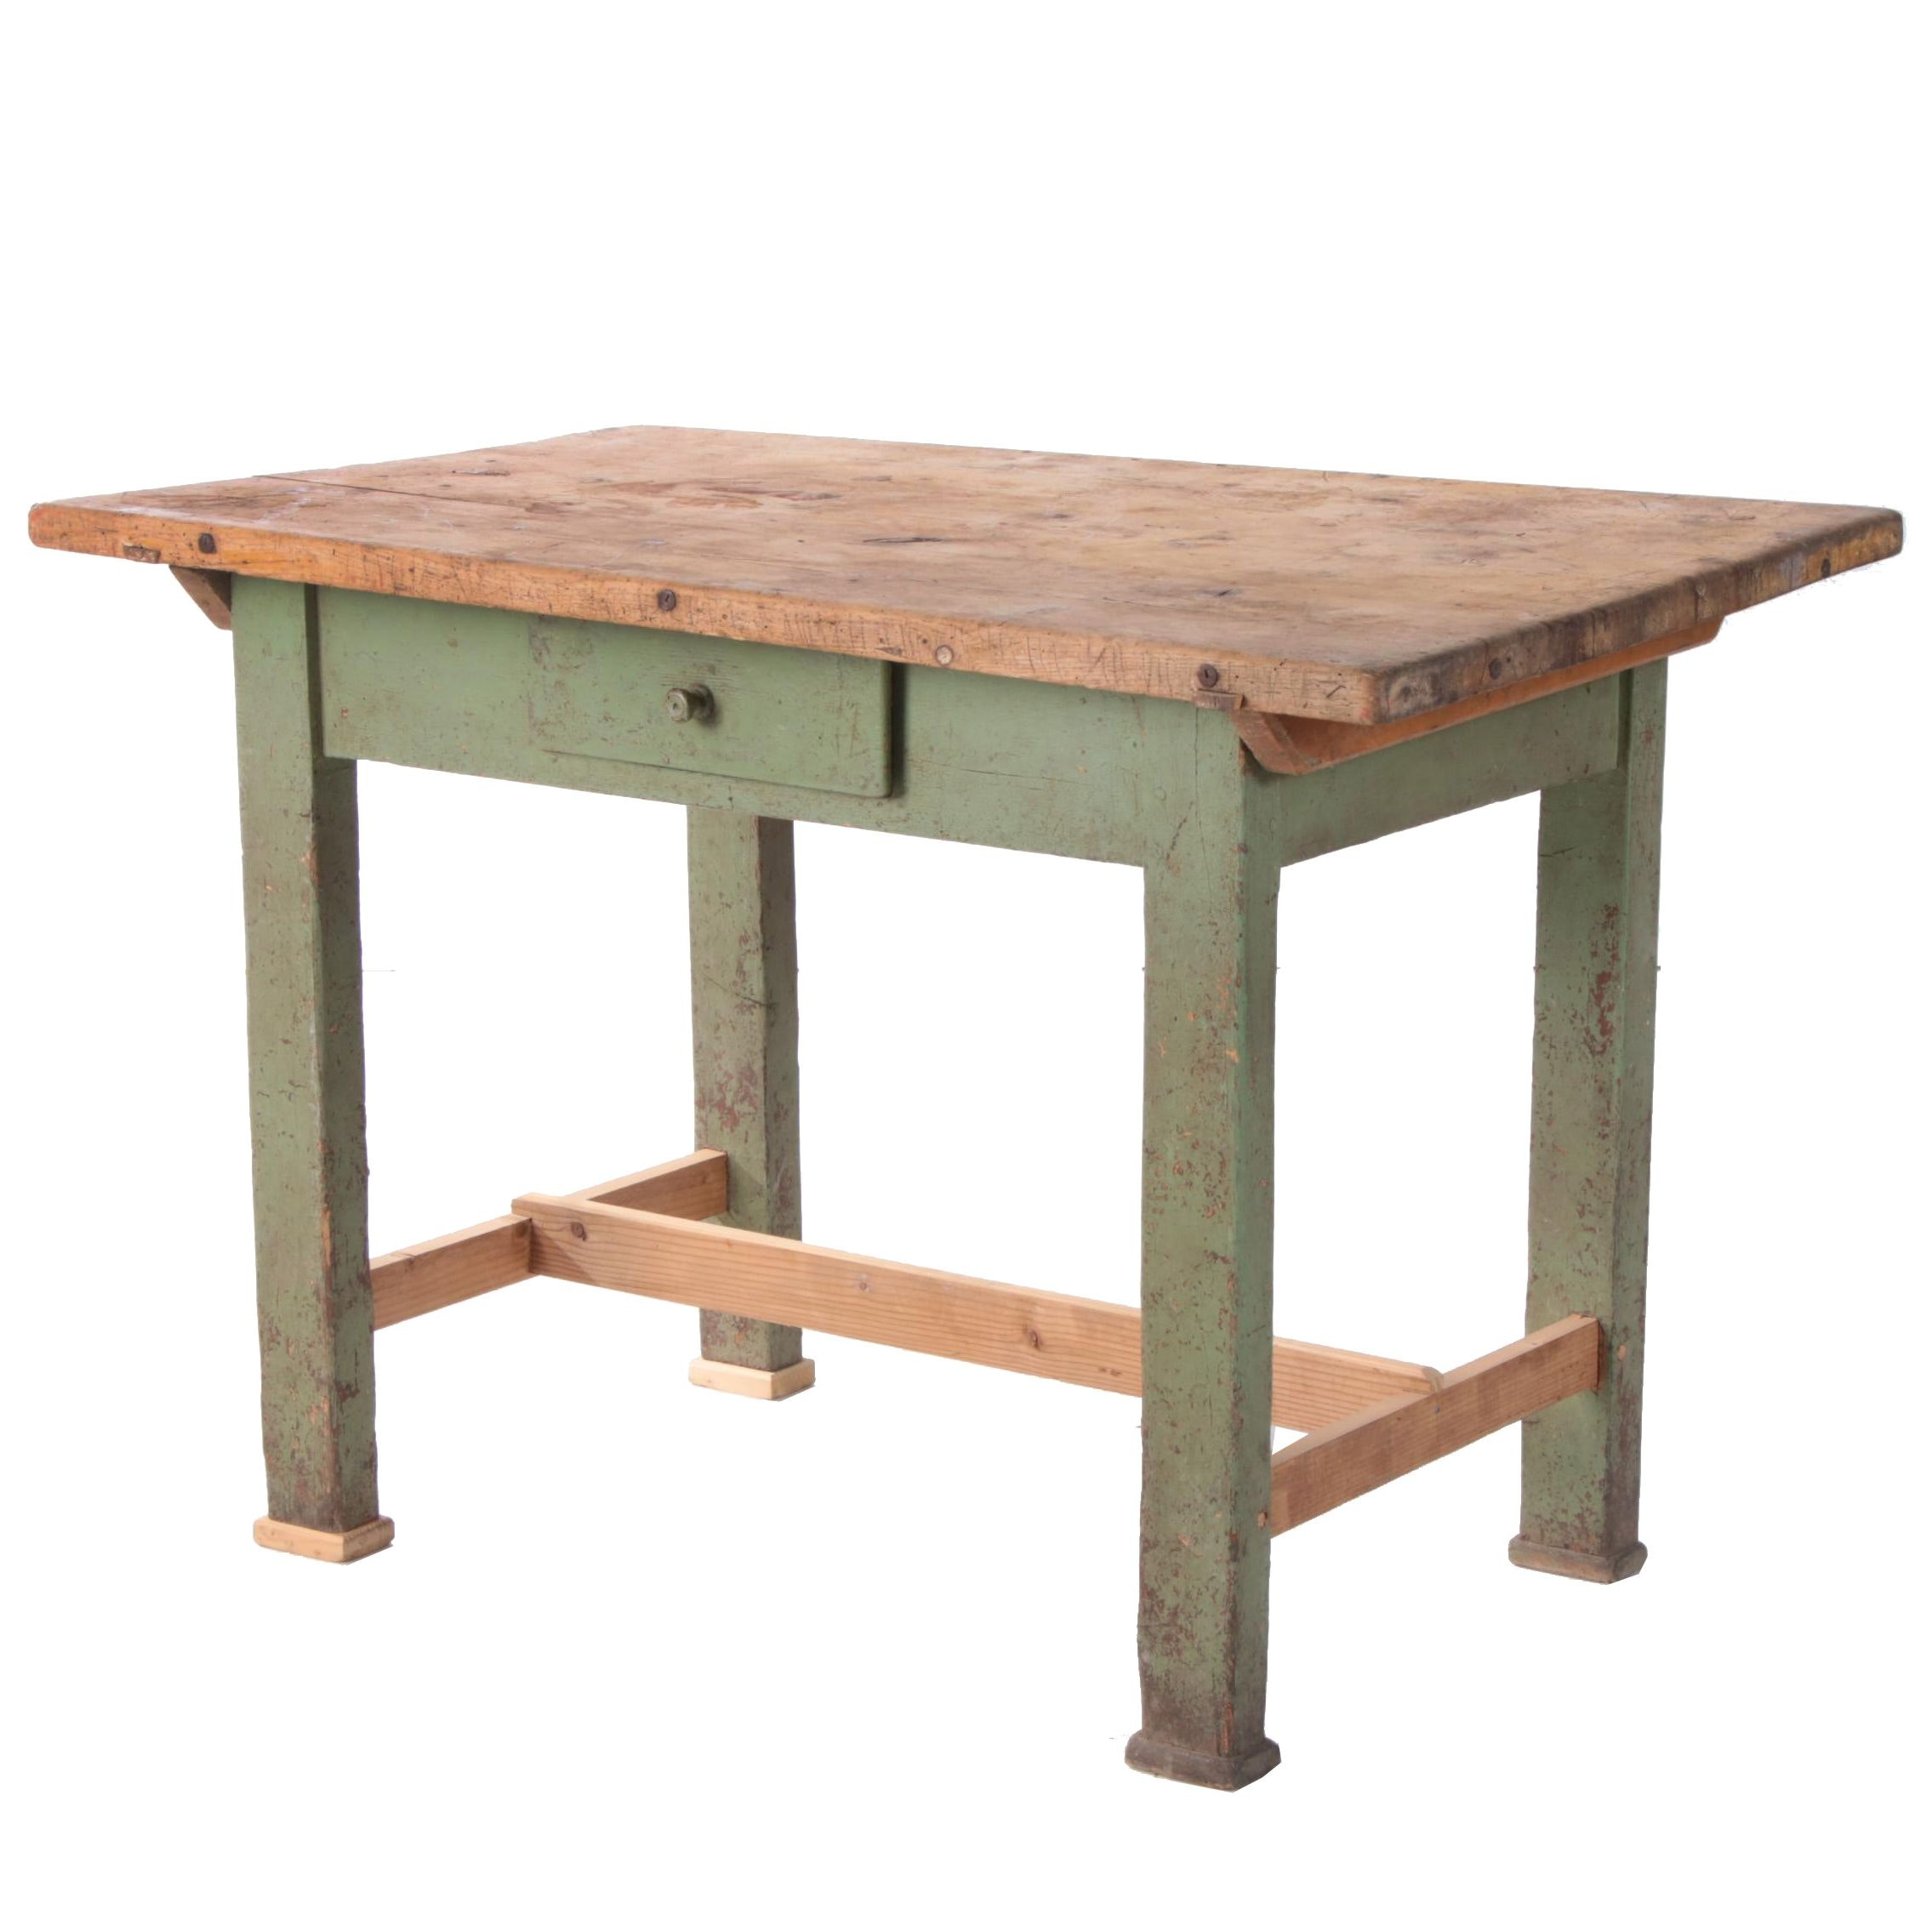 Hungarian Painted Pine Work Table, Mid-20th Century